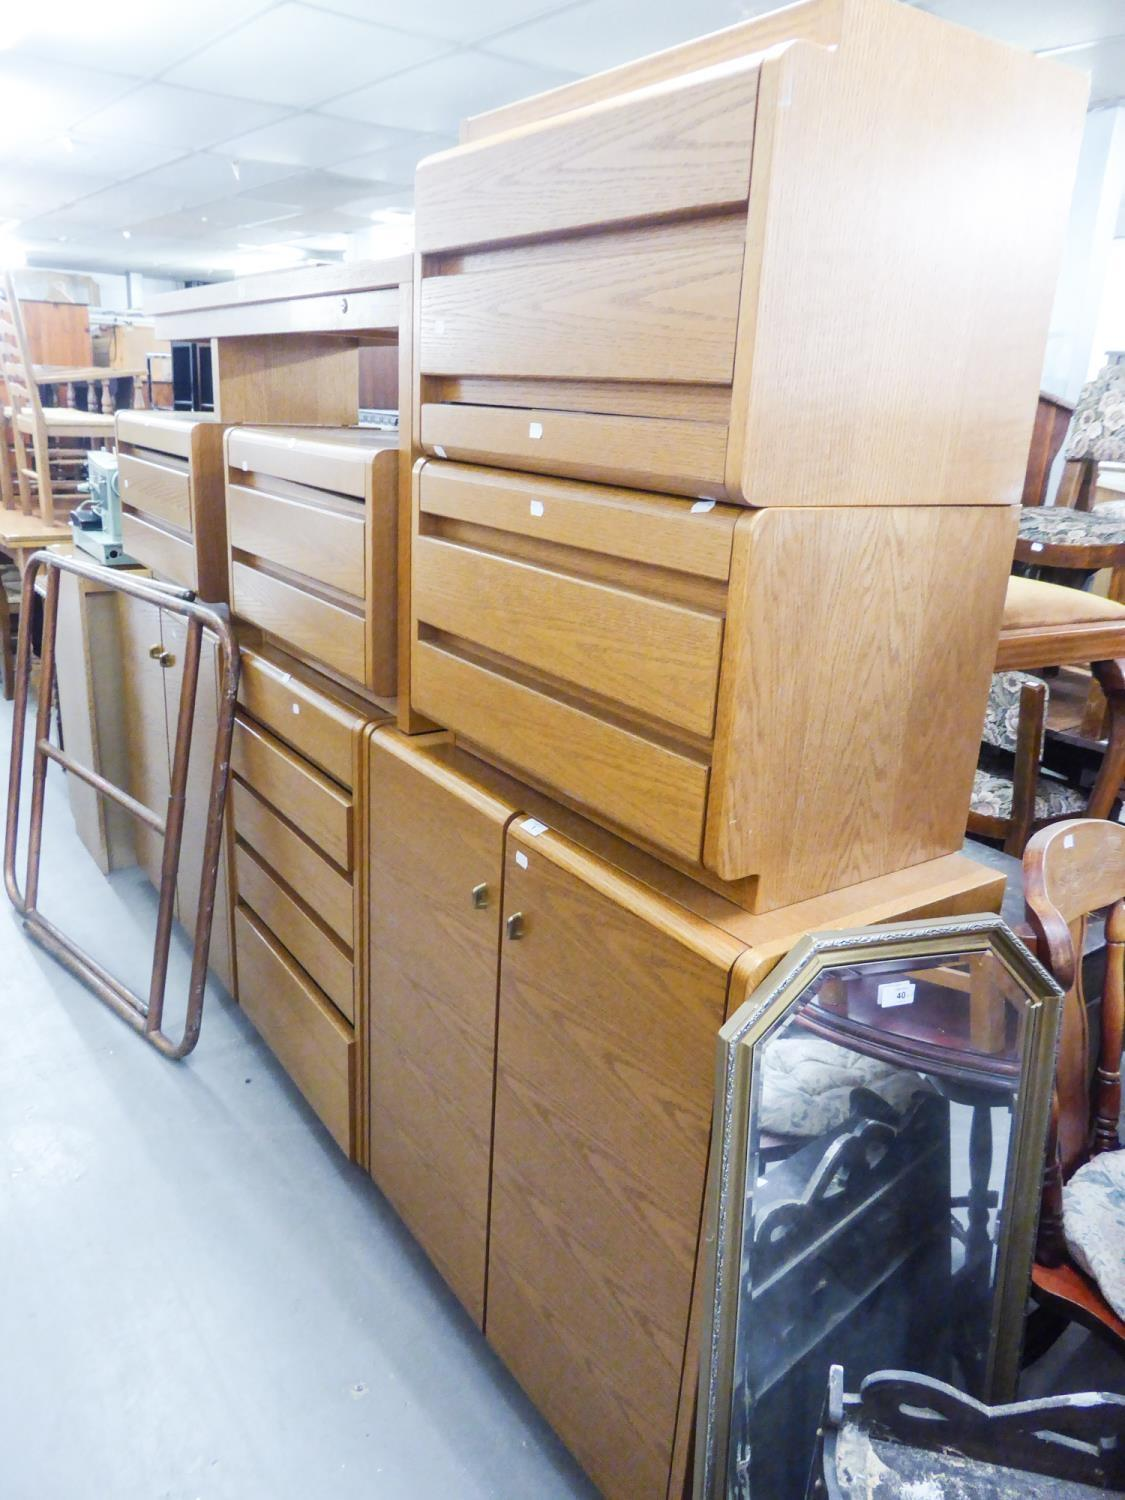 GOOD QUALITY 'MOSER' LIGHT OAK BEDROOM FURNITURE TO INCLUDE; A FIVE DRAWER CHEST, A TWO DOOR